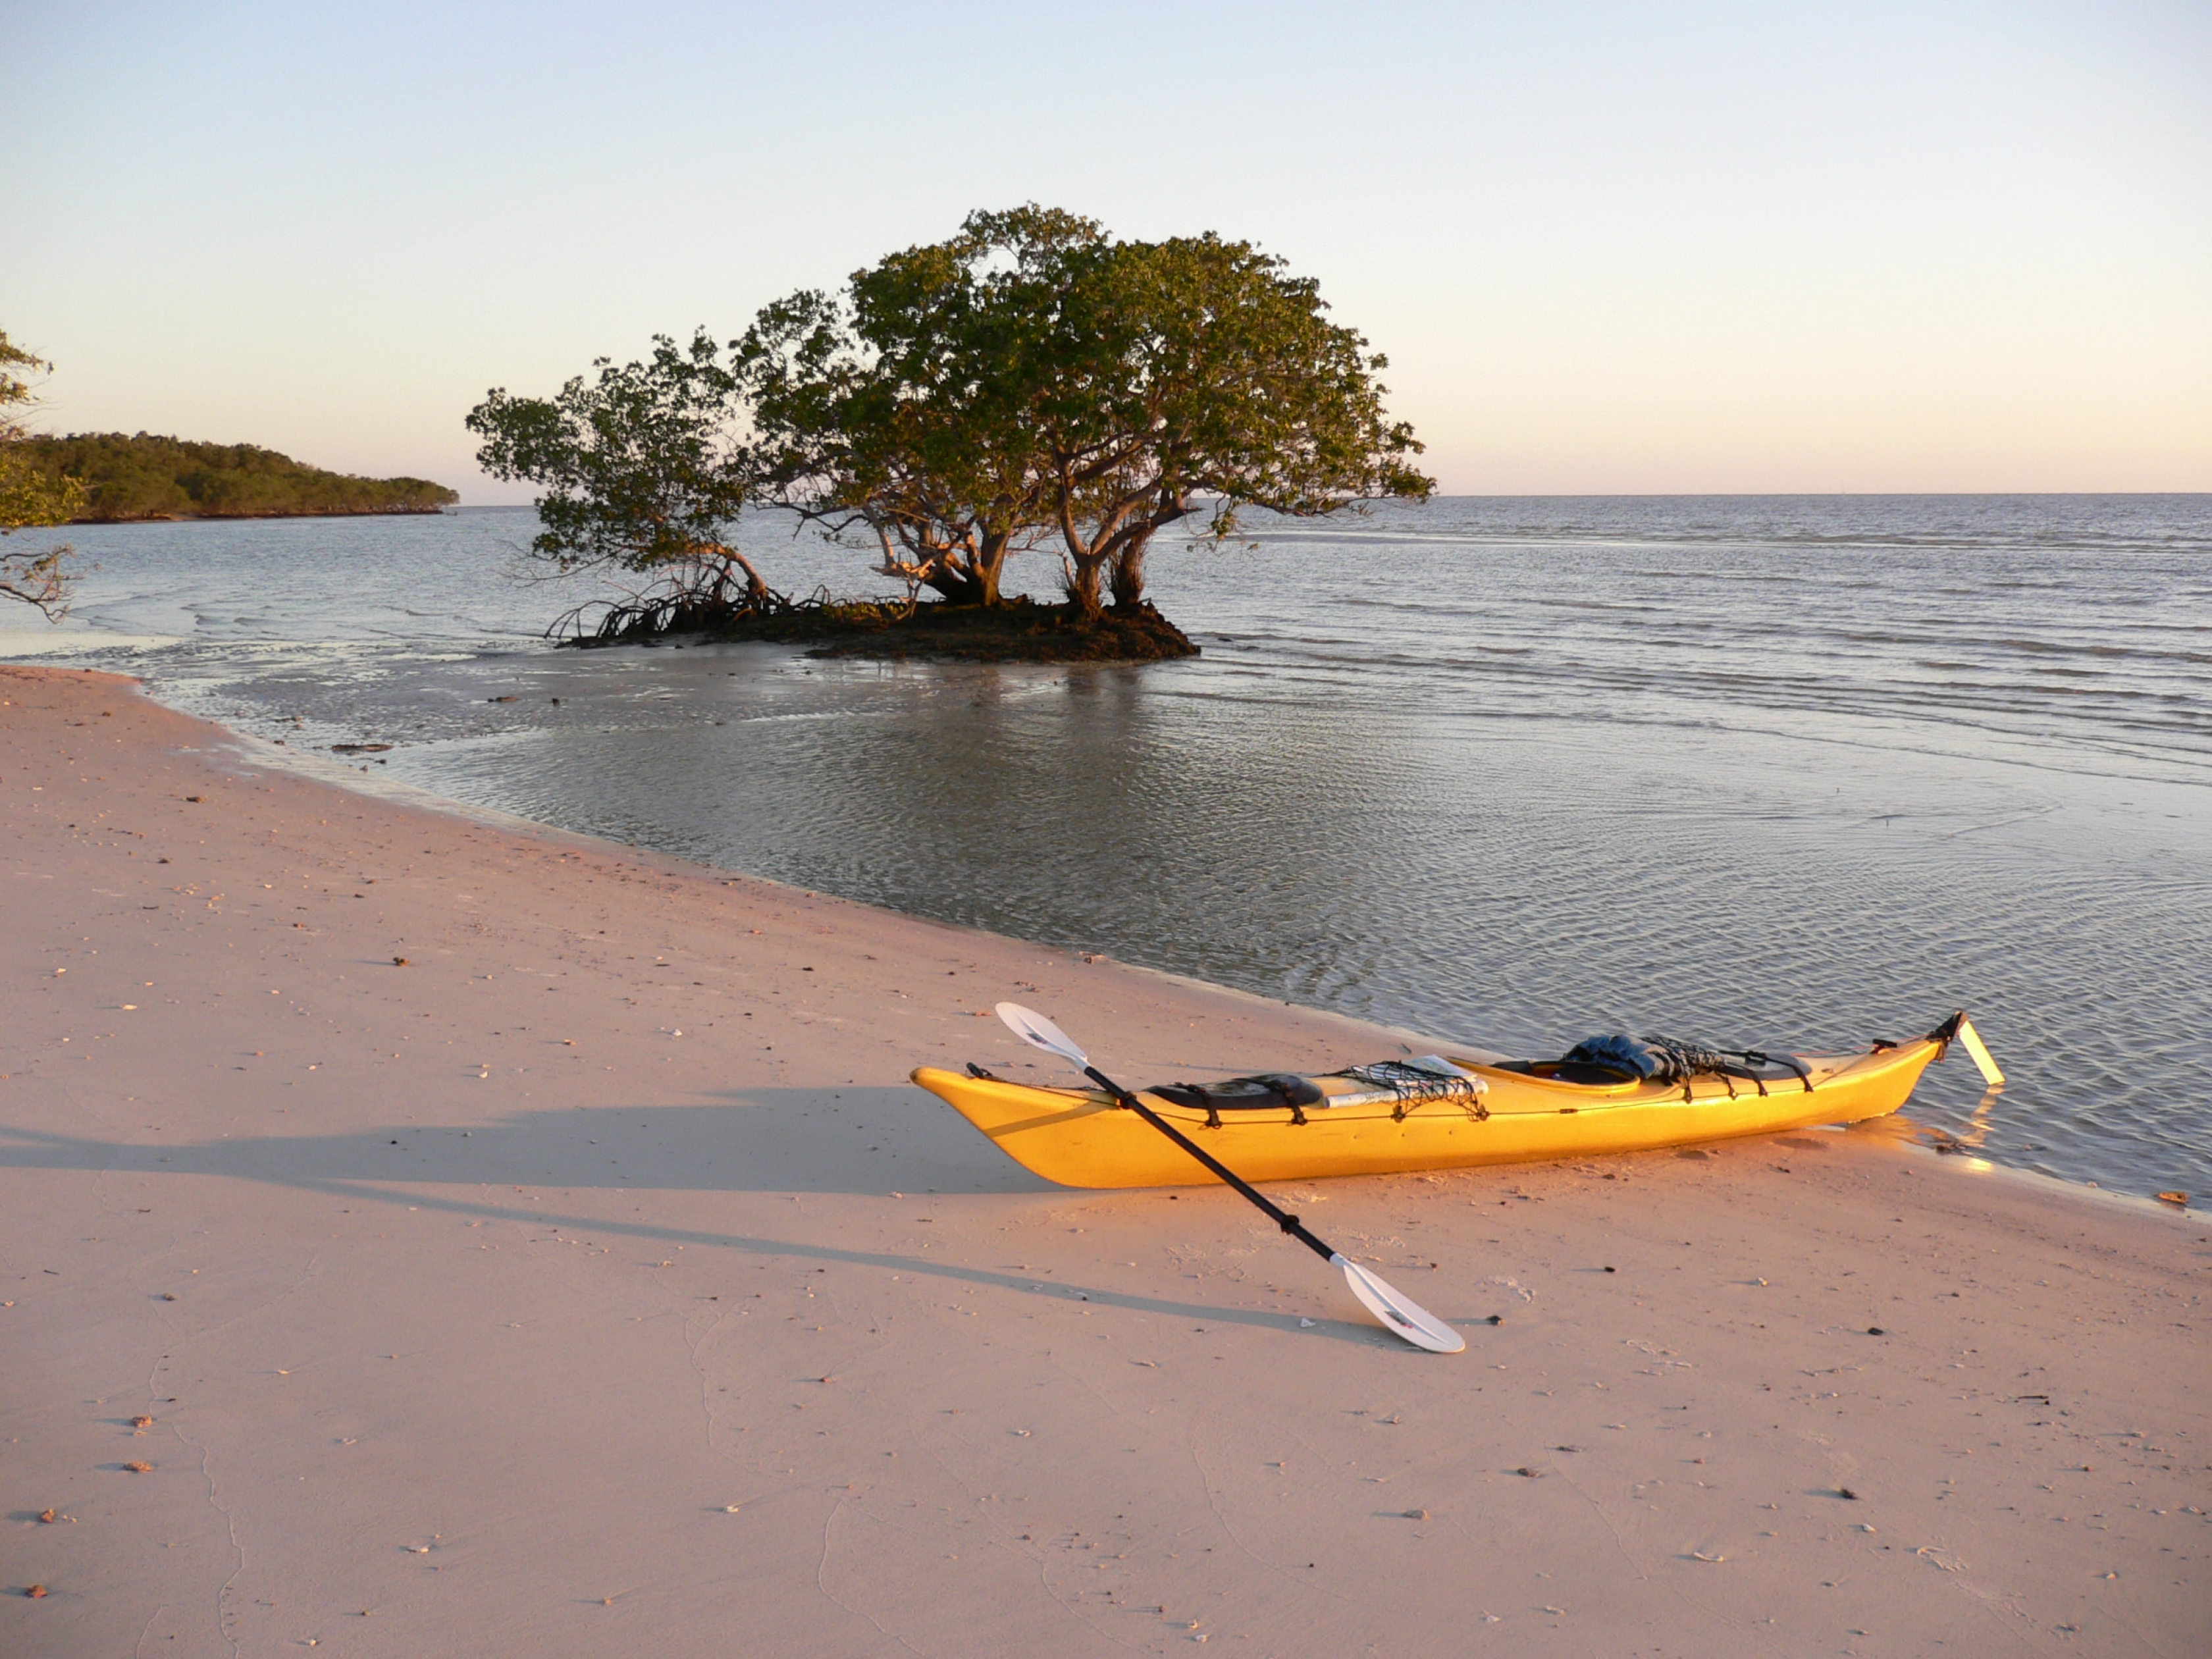 Un kayak en la playa en Everglades en Tiger Key.